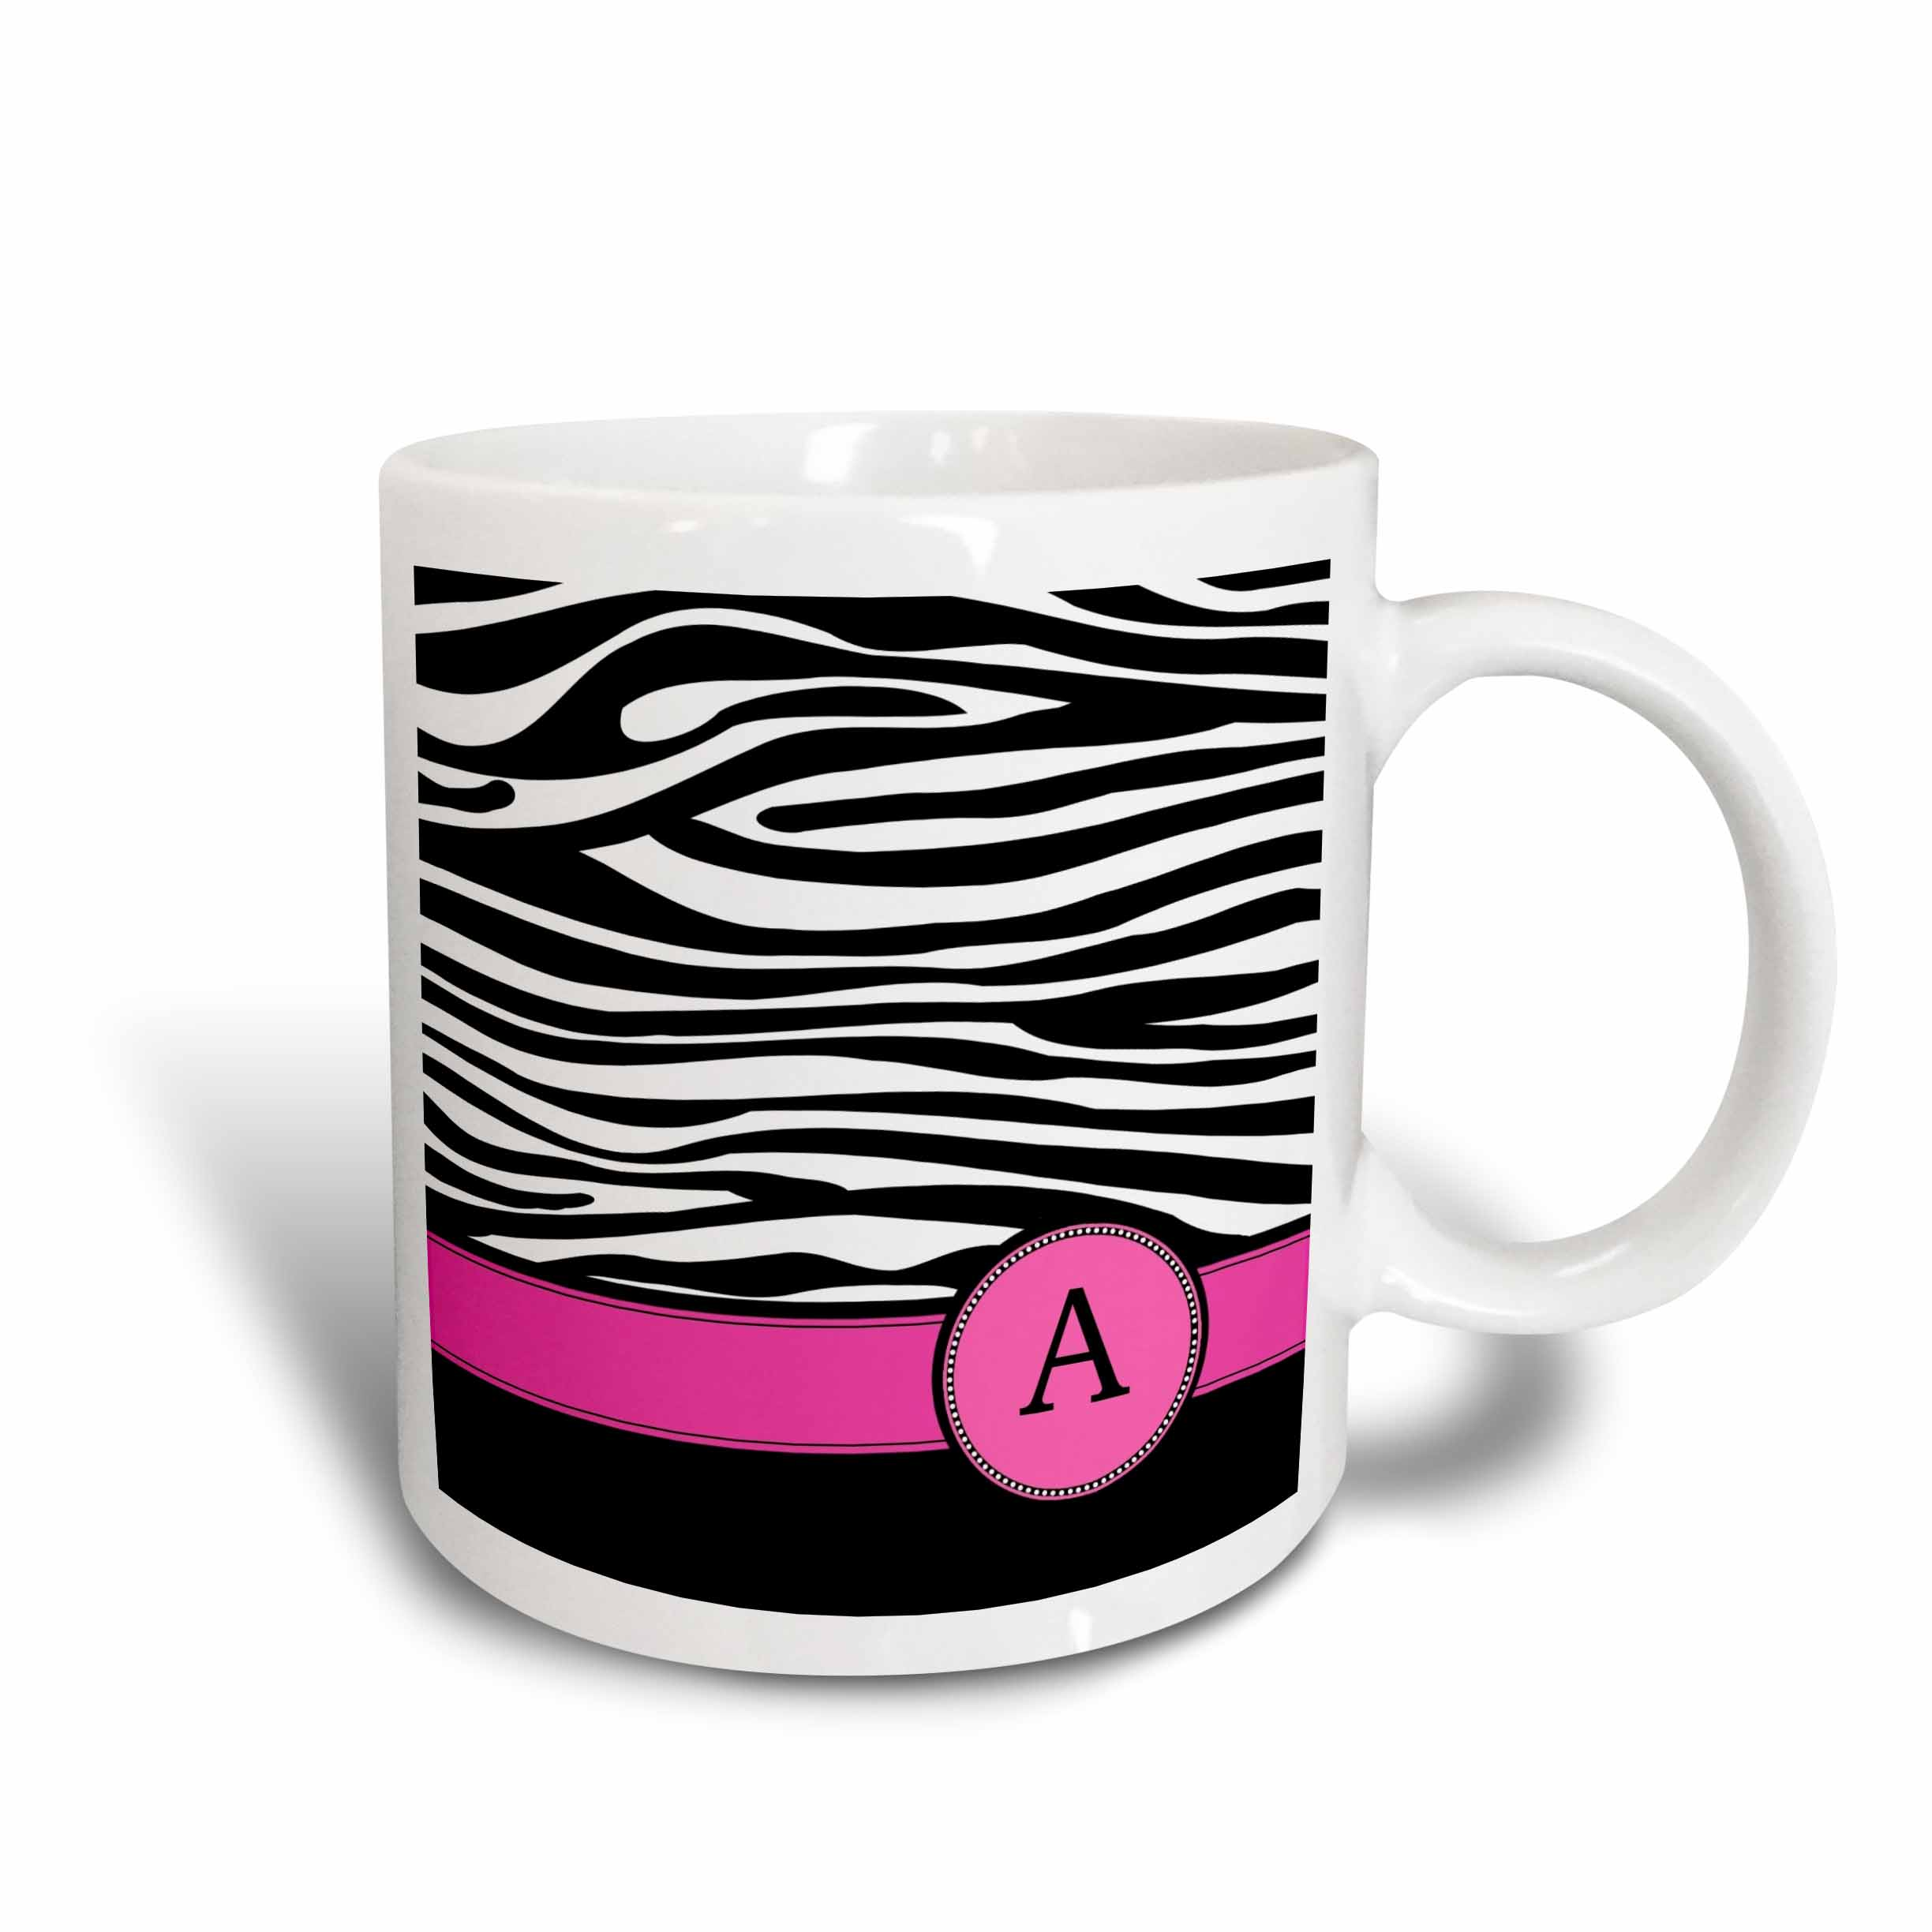 3dRose Letter A monogrammed on black and white zebra stripes animal print with hot pink personal initial, Ceramic Mug, 11-ounce